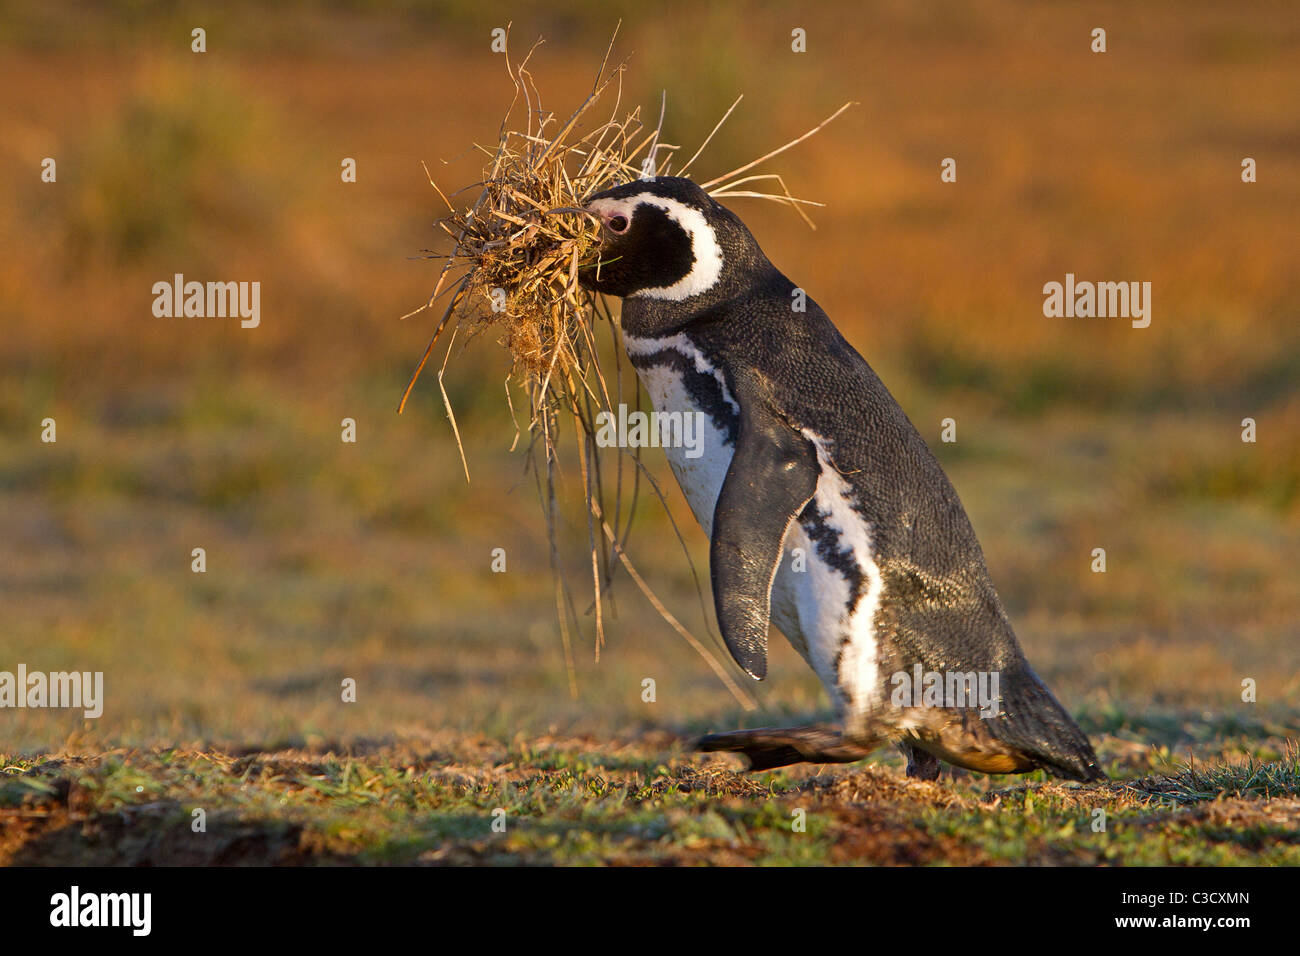 Magellanic Penguin (Spheniscus magellanicus) carrying nesting material. Sea Lion Island, Falkland Islands. - Stock Image